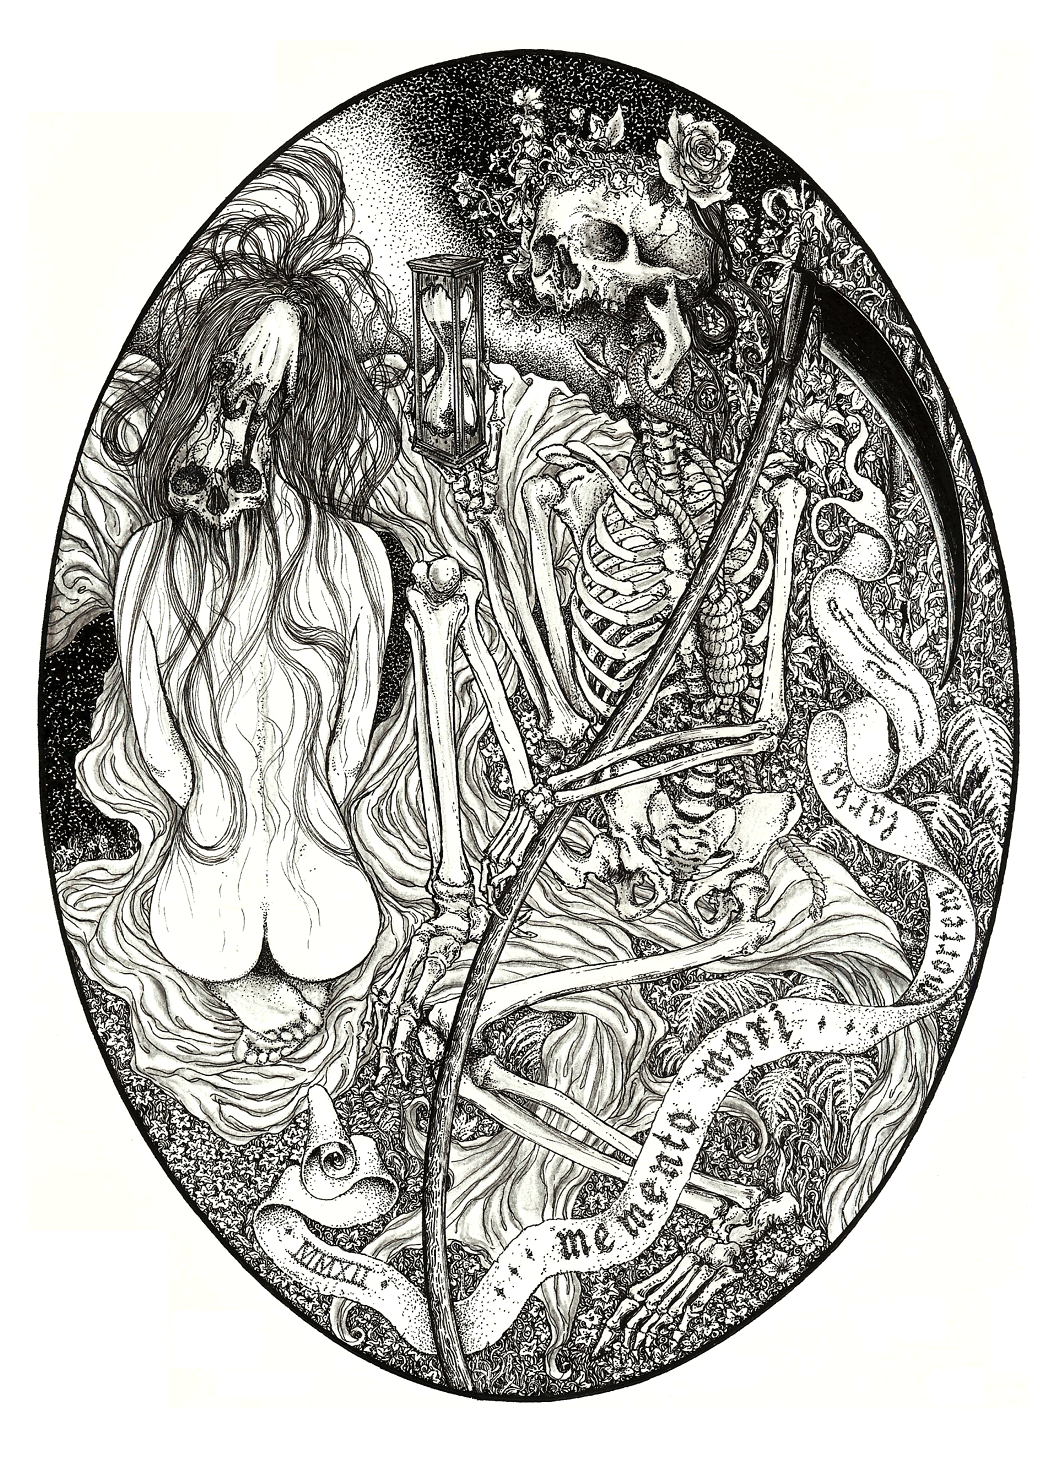 Elias Aquino - Memento Mori, 2012. China Ink and colour pencil on paper, 29,7 x 21,0 cm. (A4) facebook - society6 - blog - deviantart